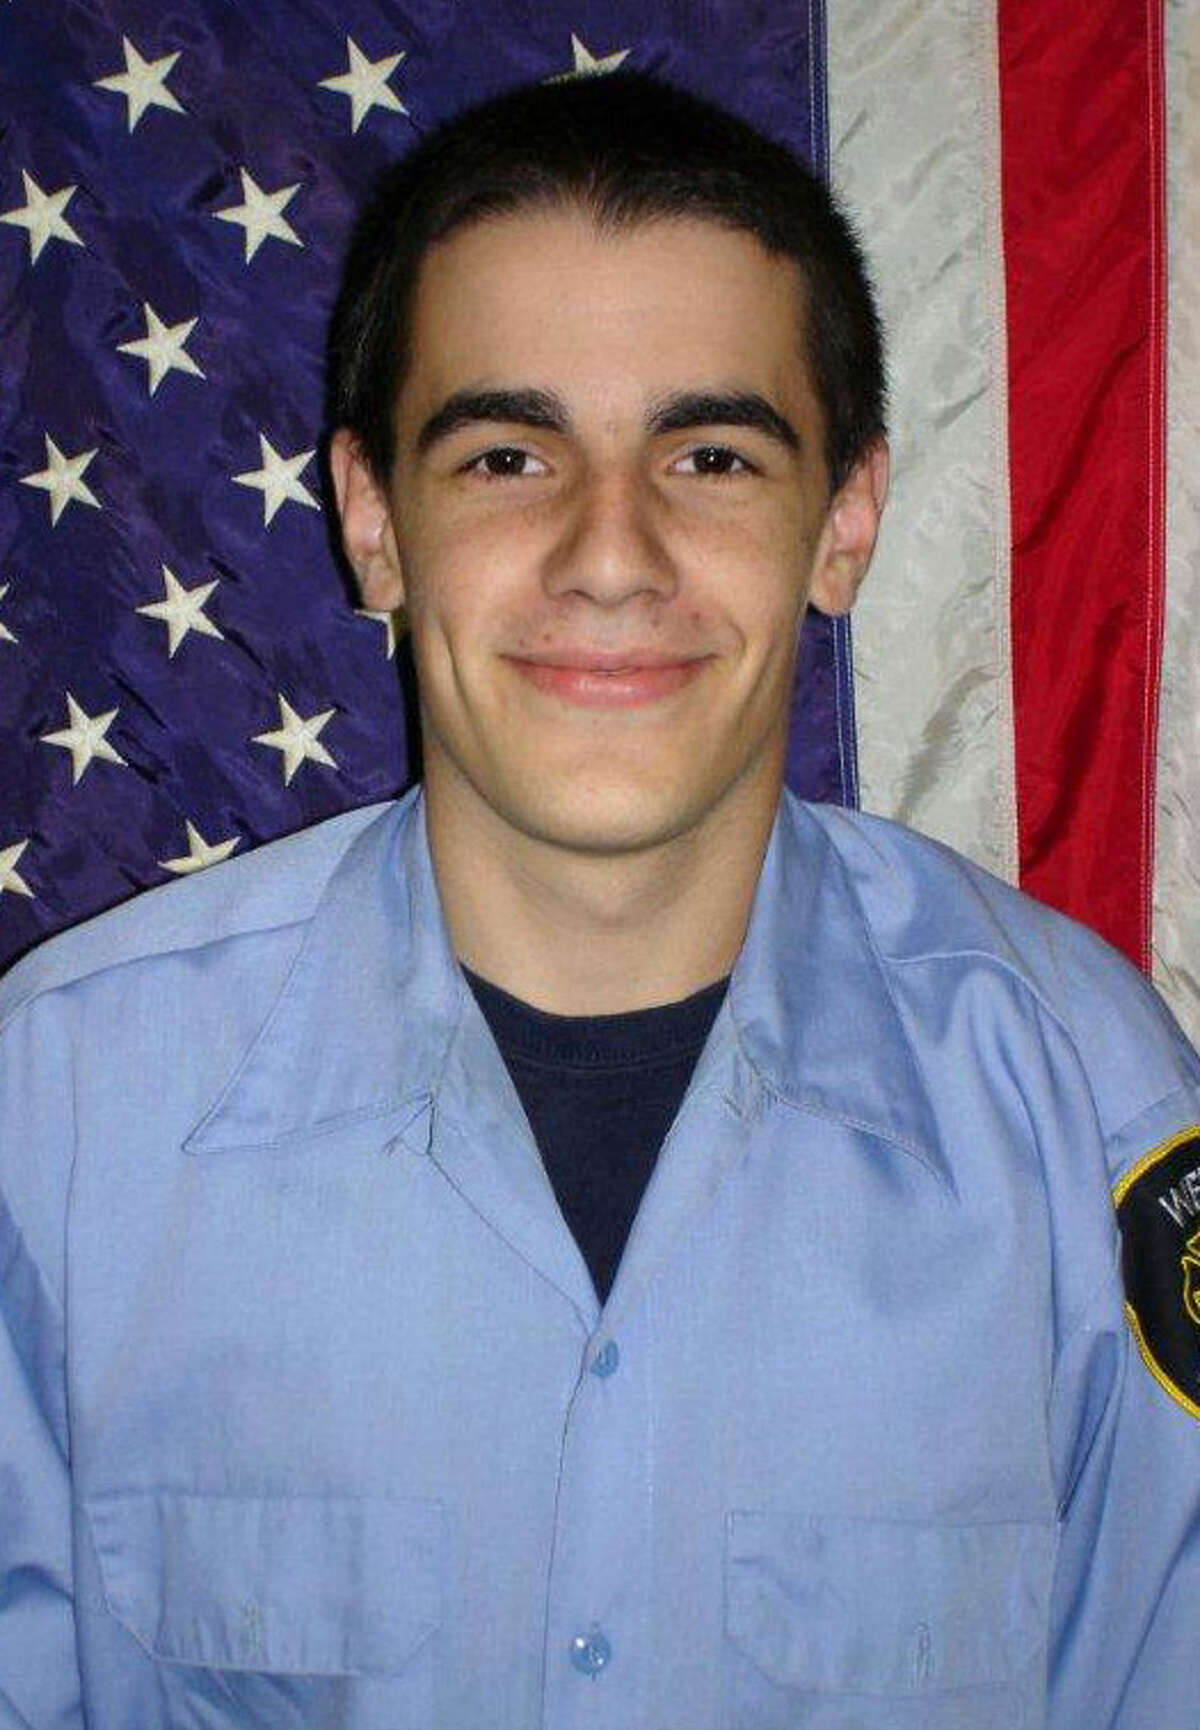 This undated image provided by the West Webster fire department shows firefighter Tomasz Kaczowka. Tomasz Kaczowka. 19, was killed when William Spengler, 62, who served 17 years in prison for the 1980 hammer killing of his grandmother, armed himself with a revolver, a shotgun and a semiautomatic rifle before he set his house on fire to lure first responders into a death trap before dawn Monday, Dec. 24, 2012. (AP Photo/West Webster Fire Department)